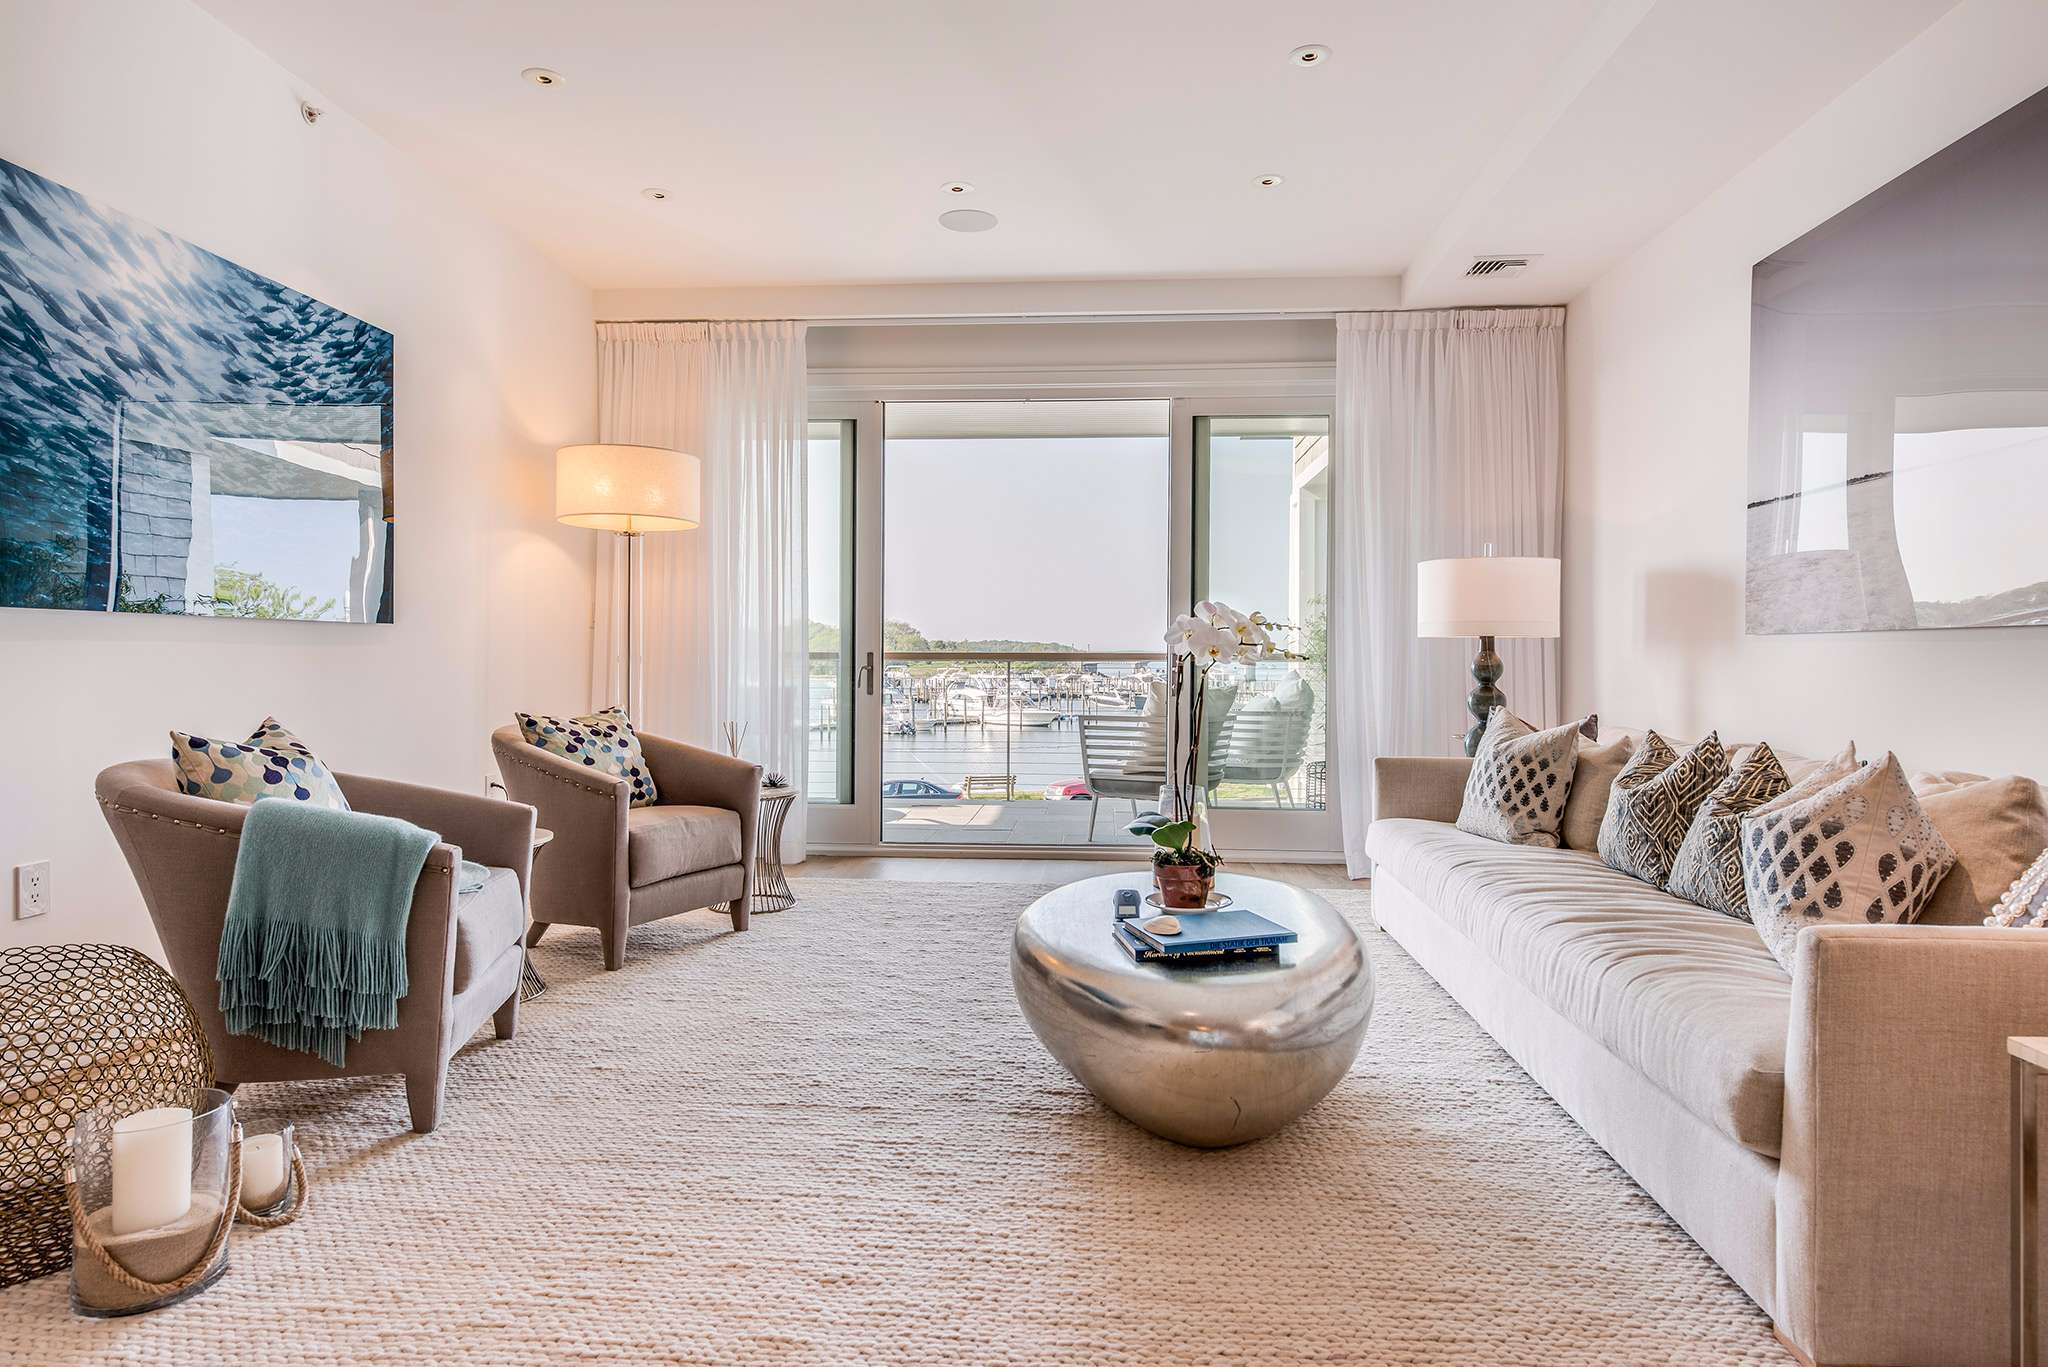 Condominium for Sale at Harbor's Edge - Resort Lifestyle In Sag Harbor 21 West Water Street, 2e, Sag Harbor, New York